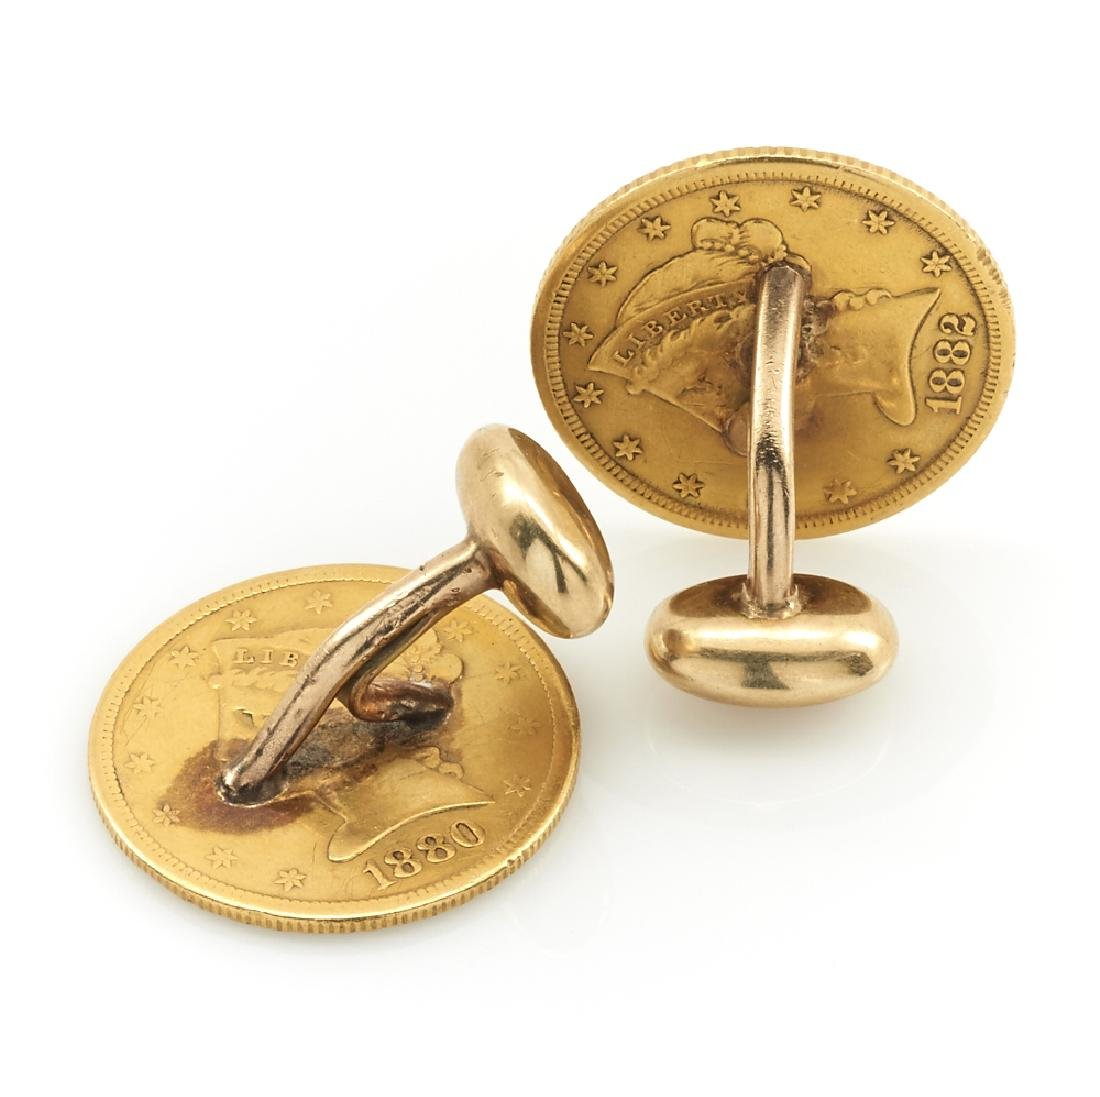 22k/18k five dollar gold coin Victorian cufflinks